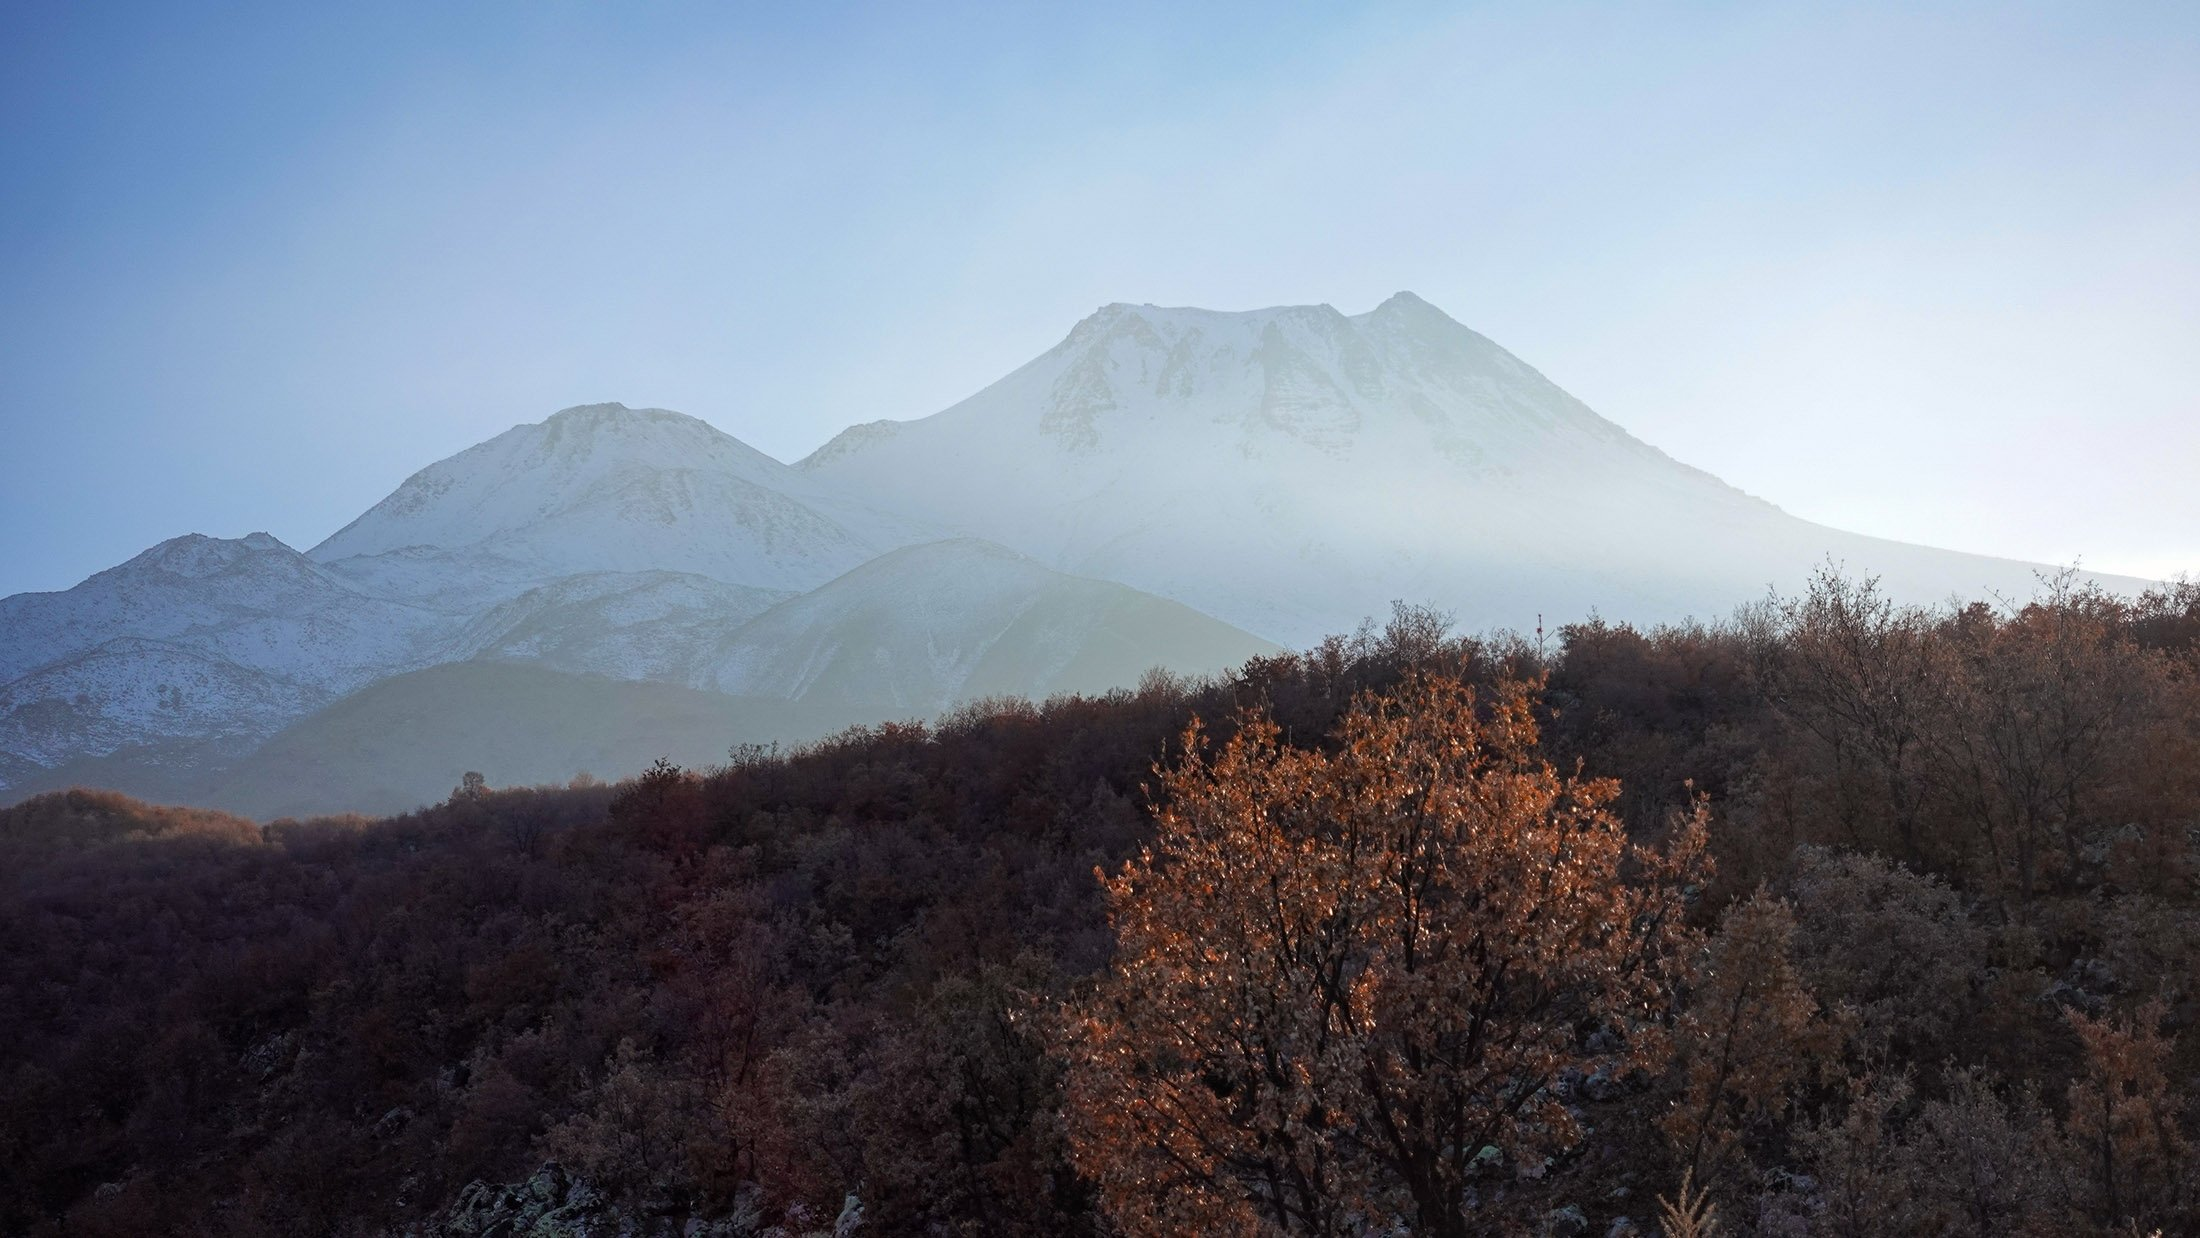 The view of Mount Hasan from the ancient city of Mokissos. (Photo by Argun Konuk)